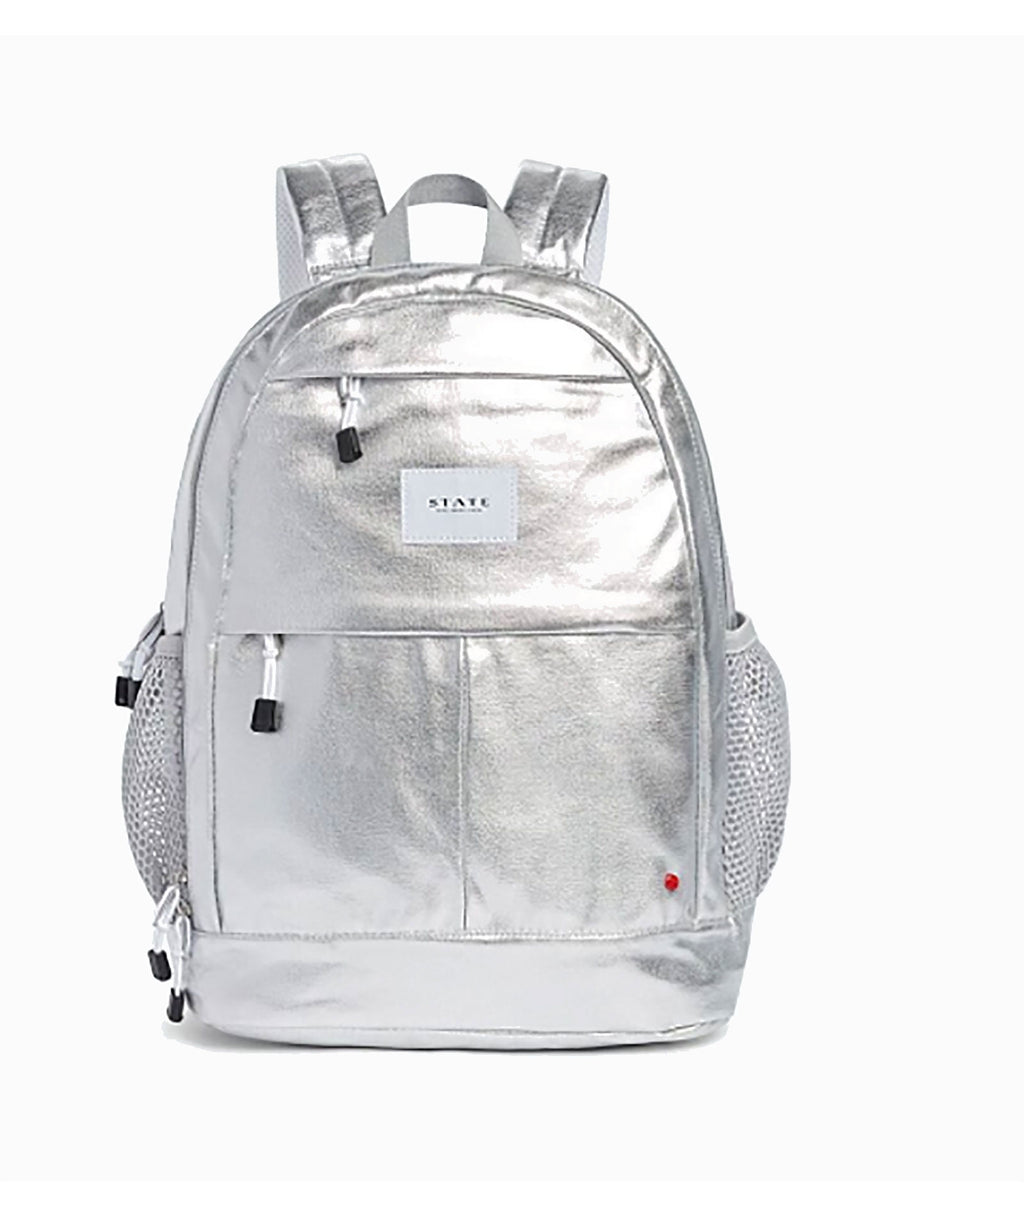 State Bags Leny Backpack Silver